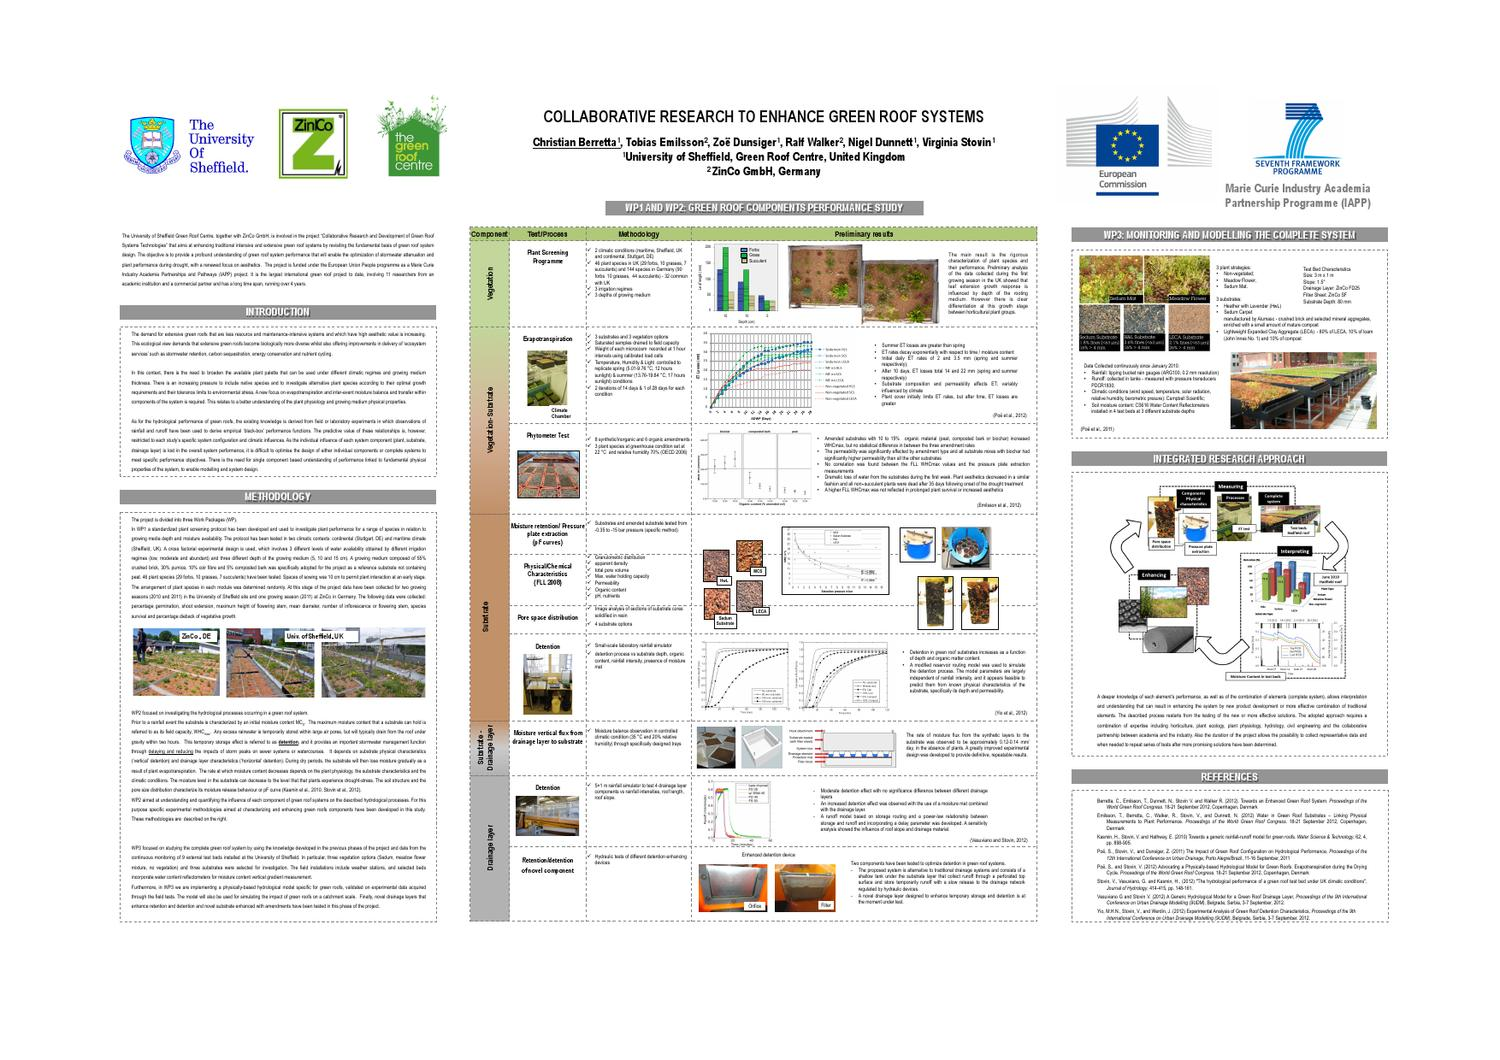 Green Roof Systems Project Overview By Landscape